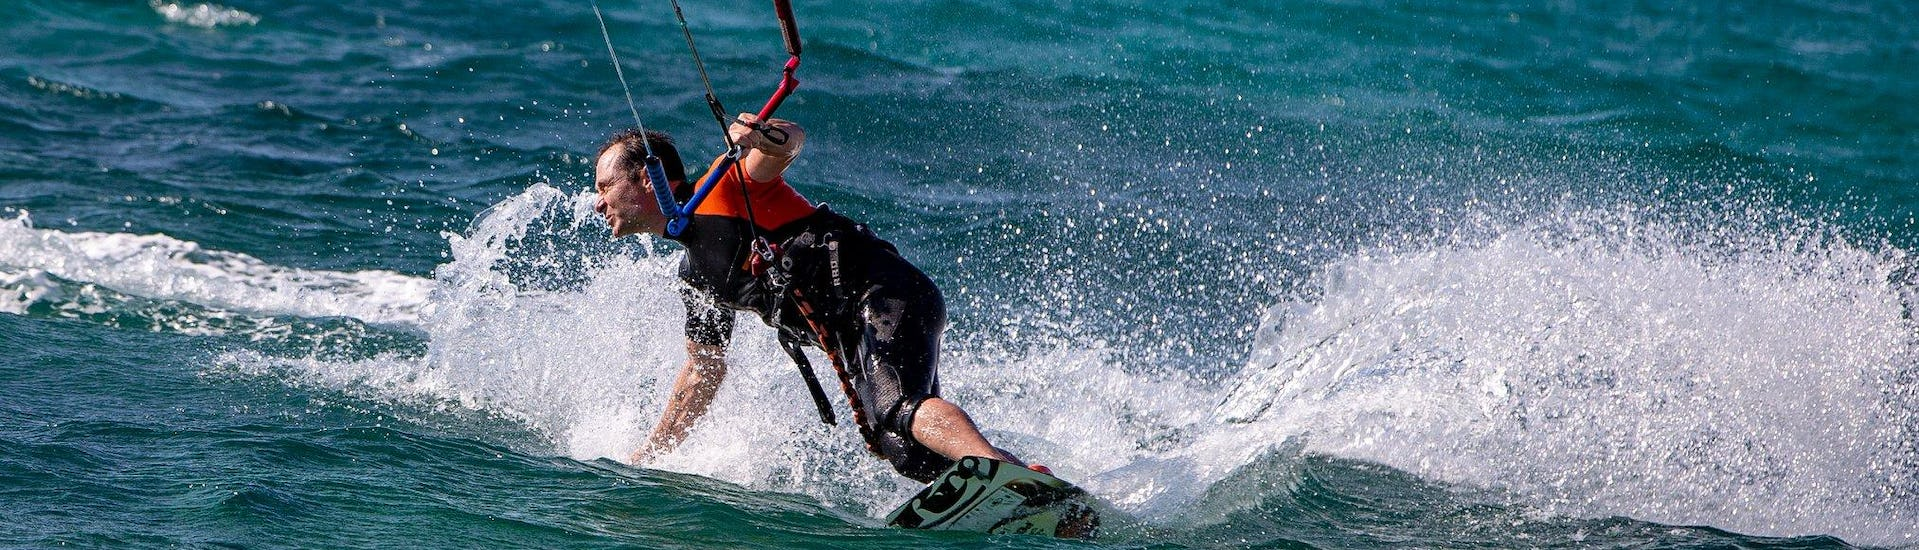 Private Kitesurfing Lessons for Teens & Adults - Advanced